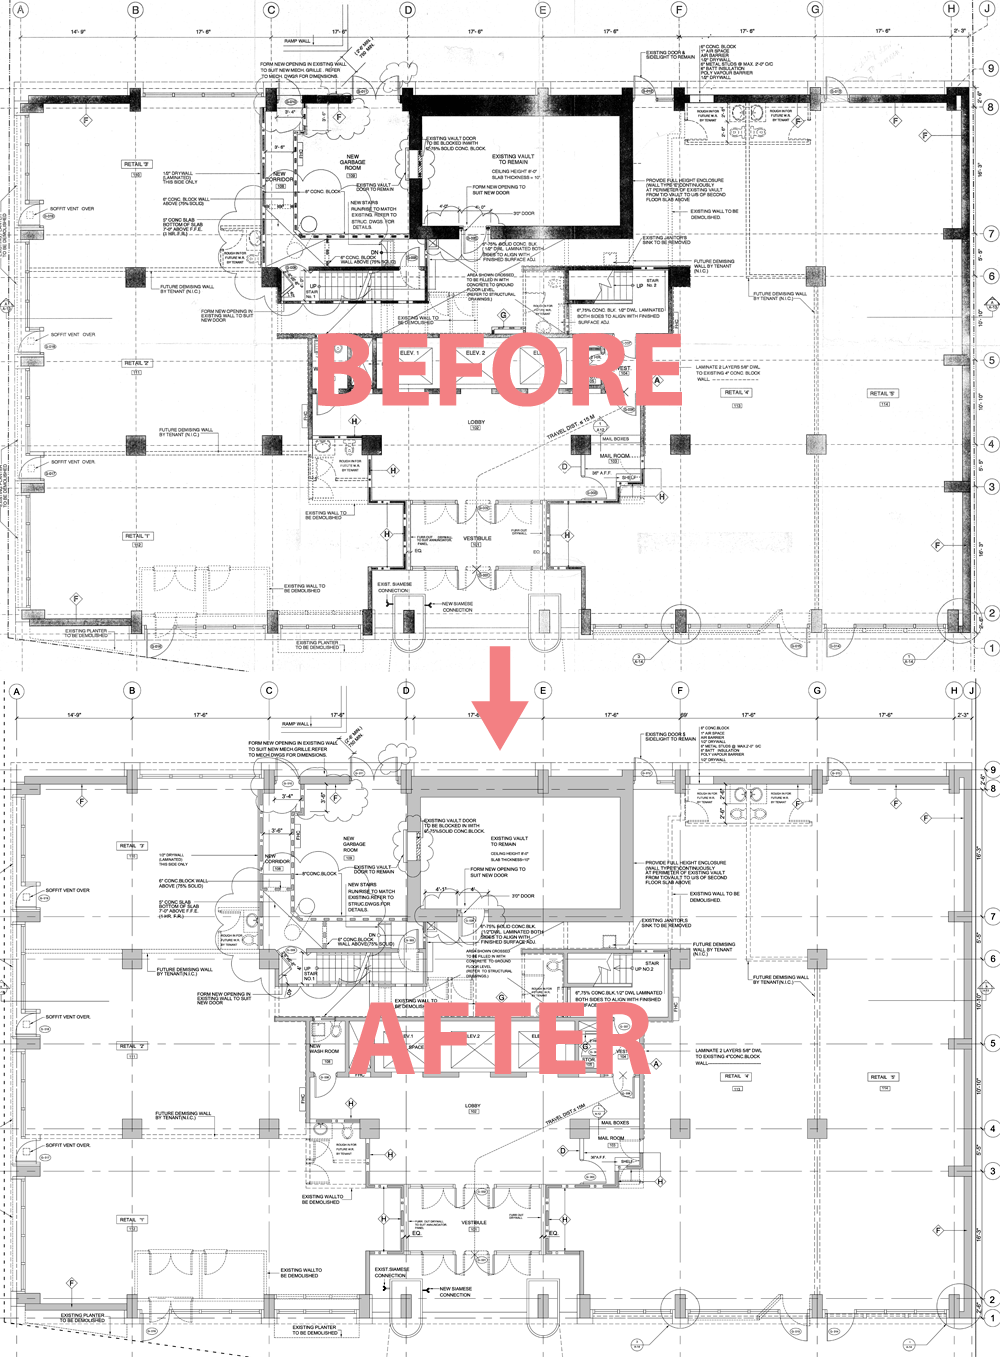 Electrical Plan Cad File Wiring Library Diagram In Autocad Office Space Floor